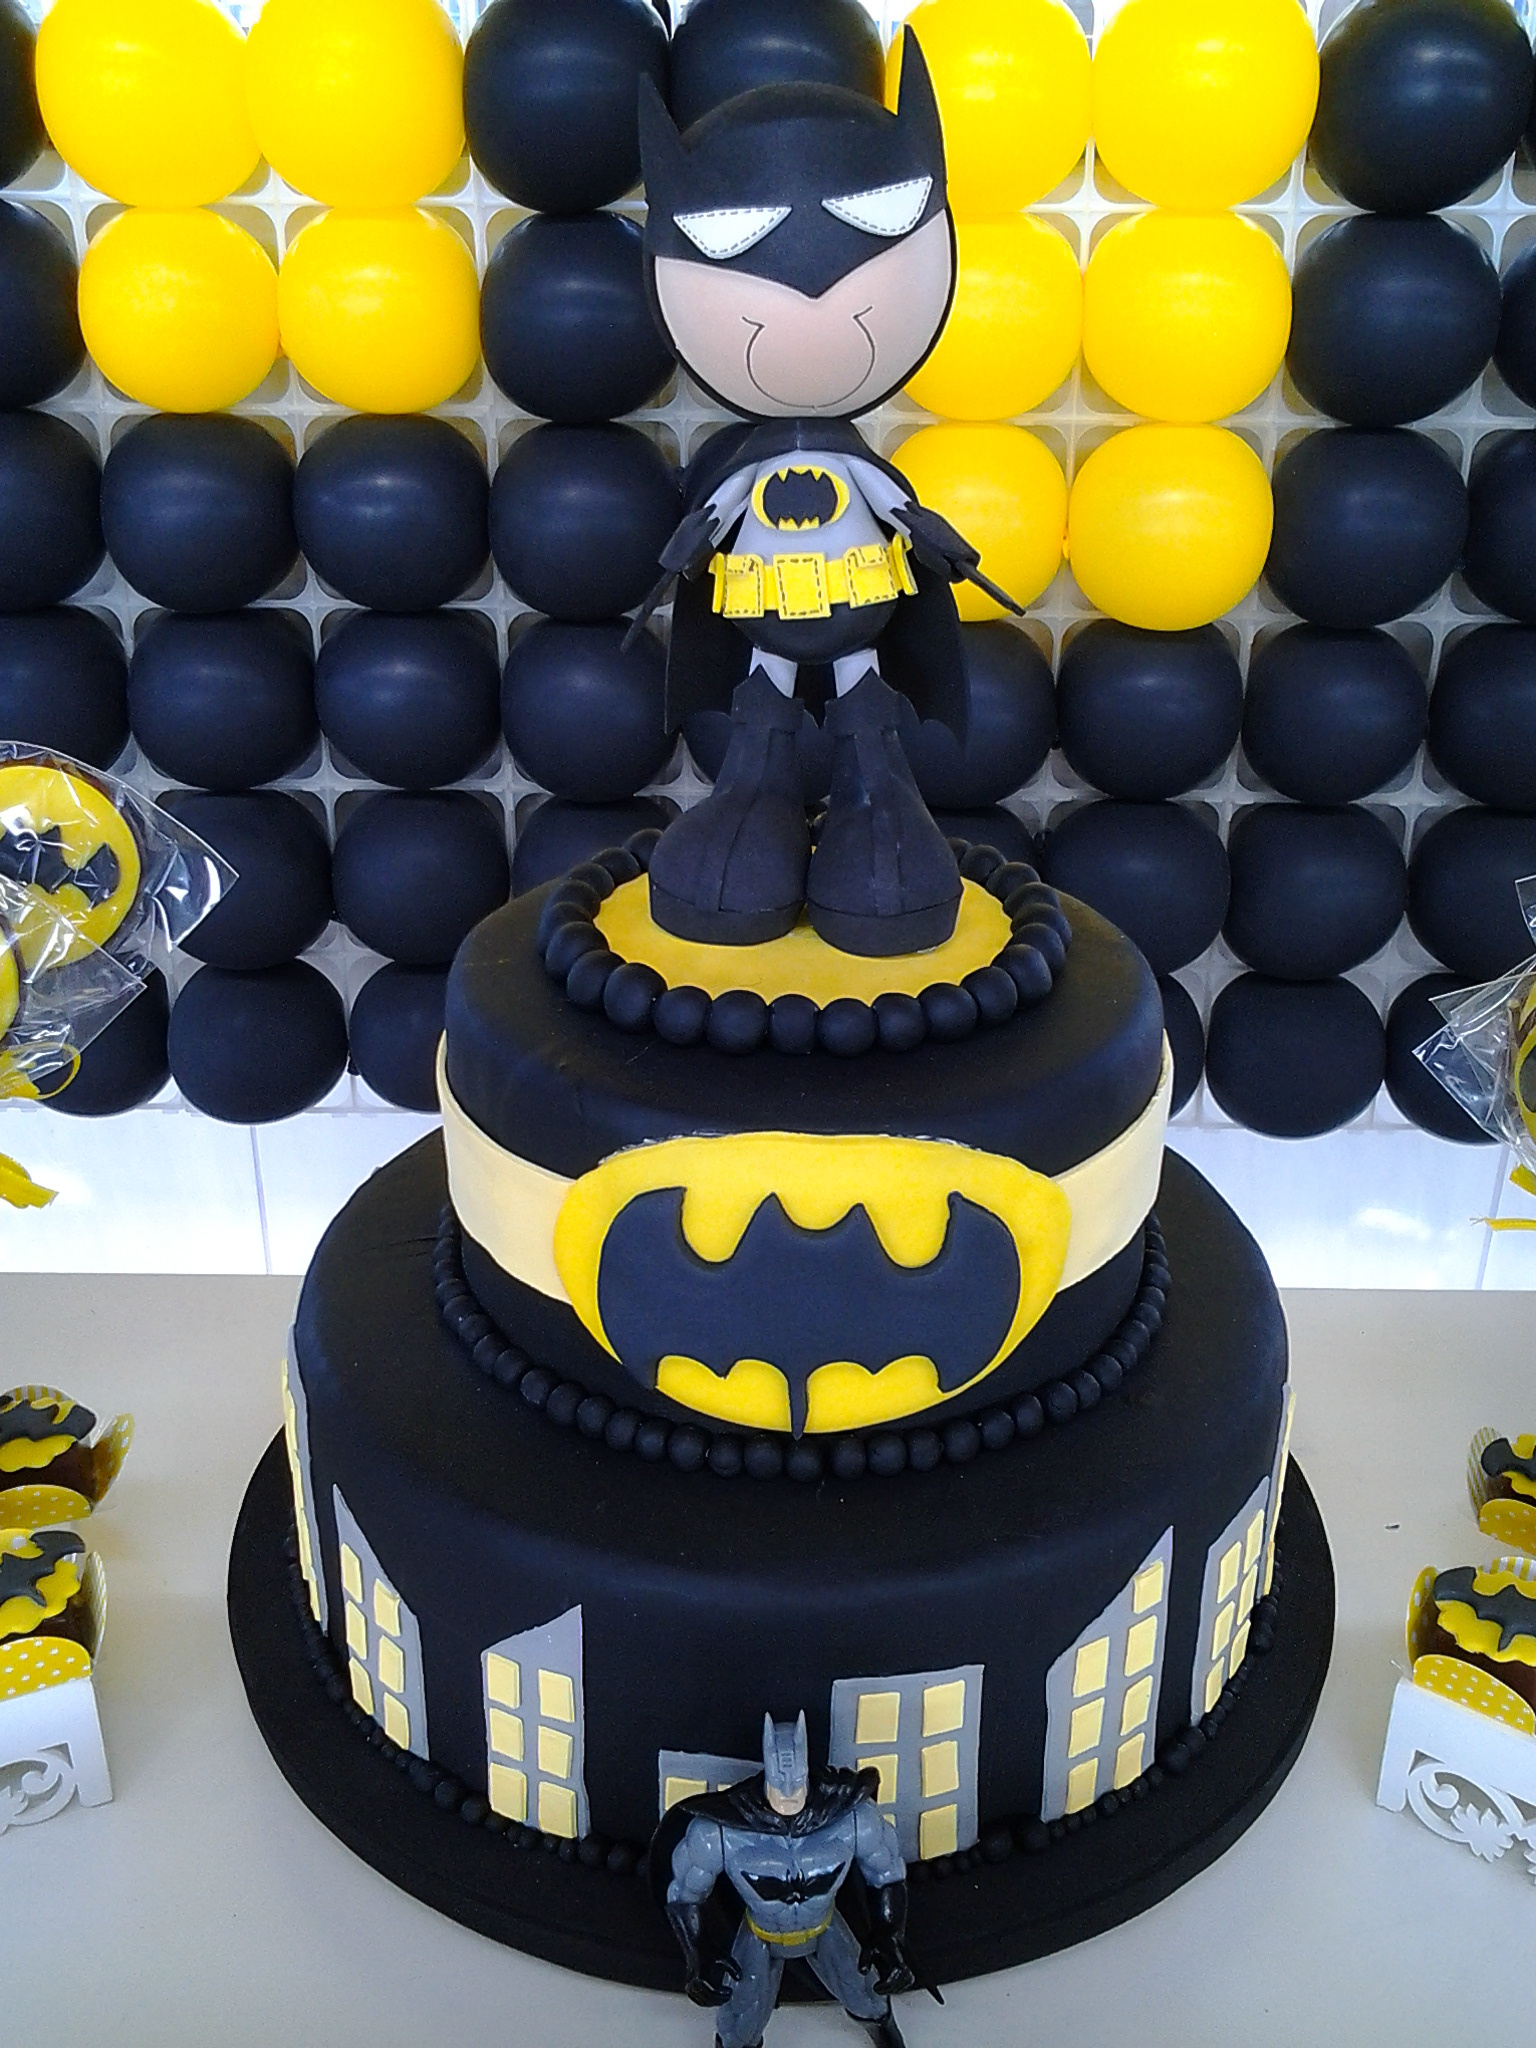 decoracao festa batman : decoracao festa batman:decoracao-festa-batman-festa decoracao-festa-batman-aniversario